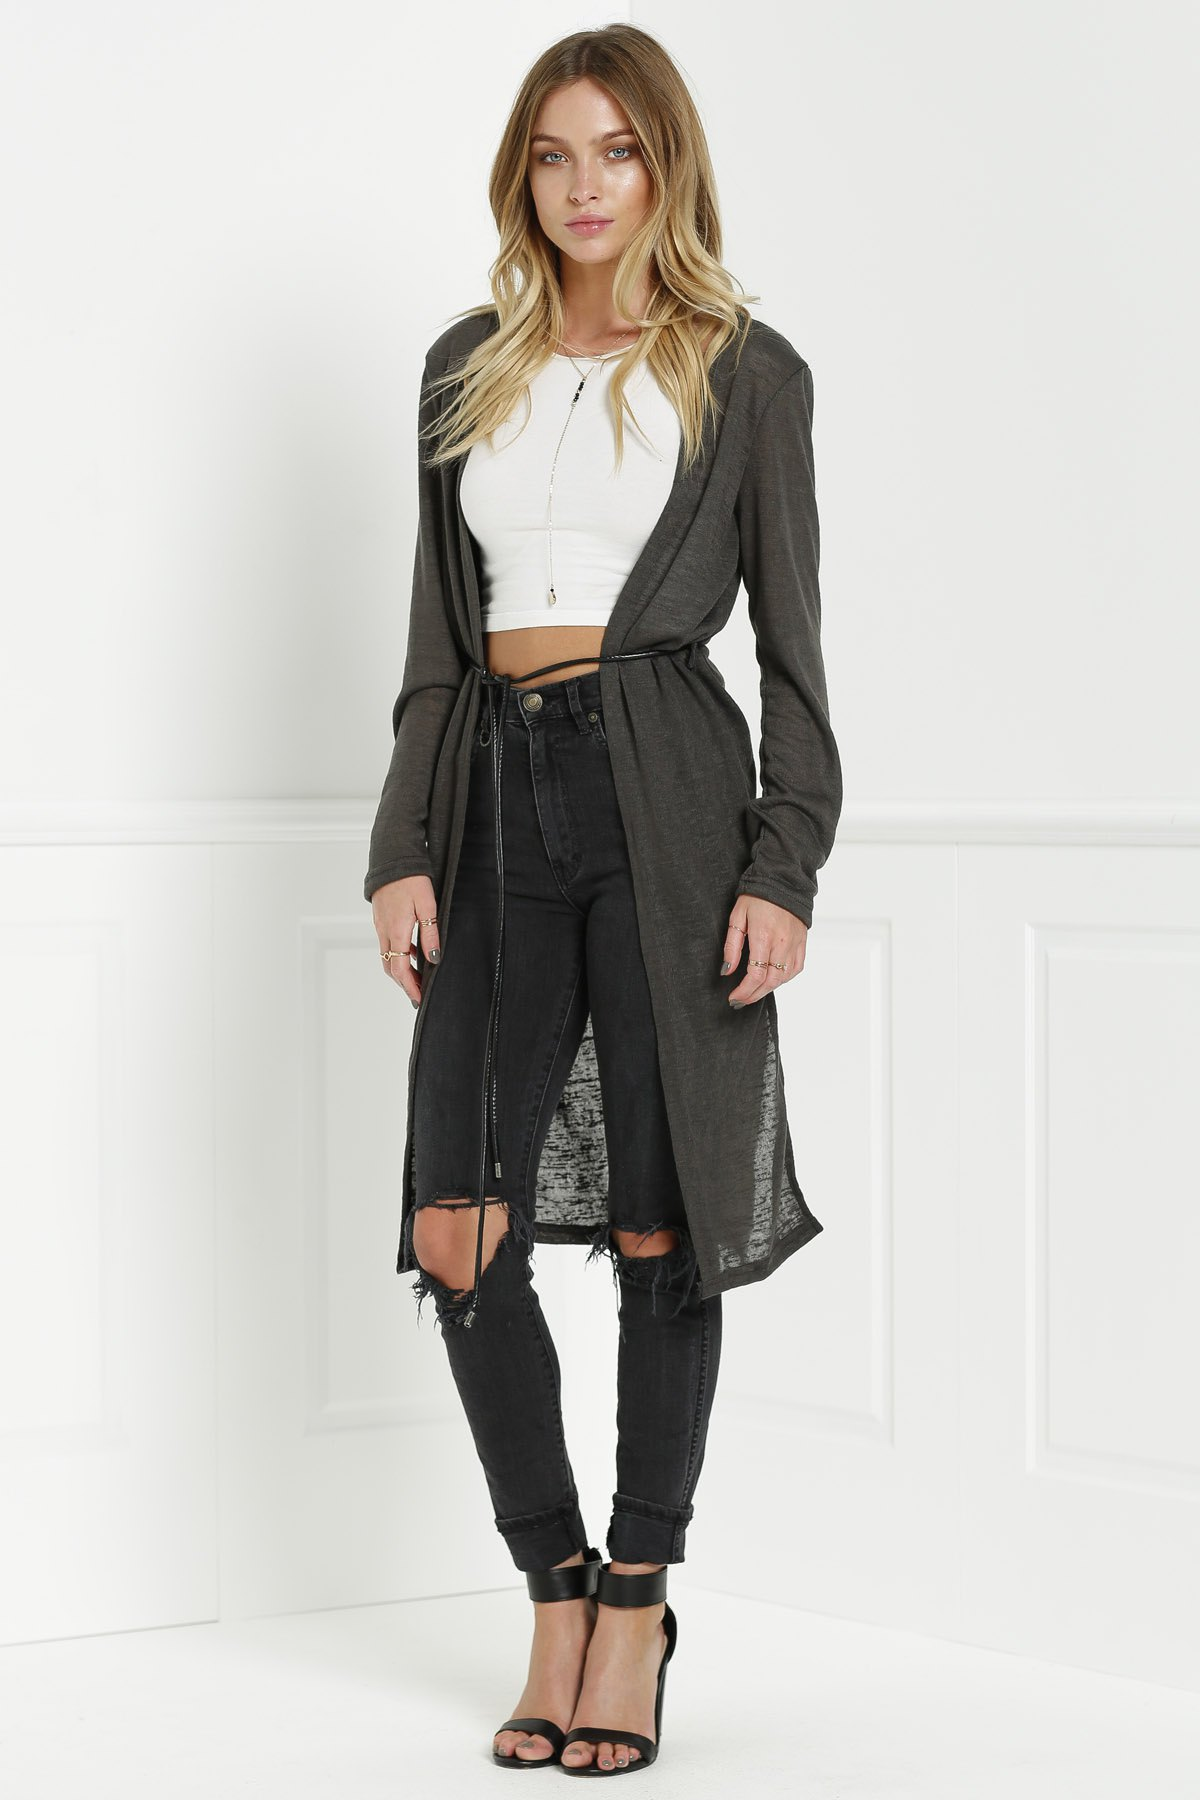 Solid Color New Look Midi Cardigan - OLIVE GREEN S